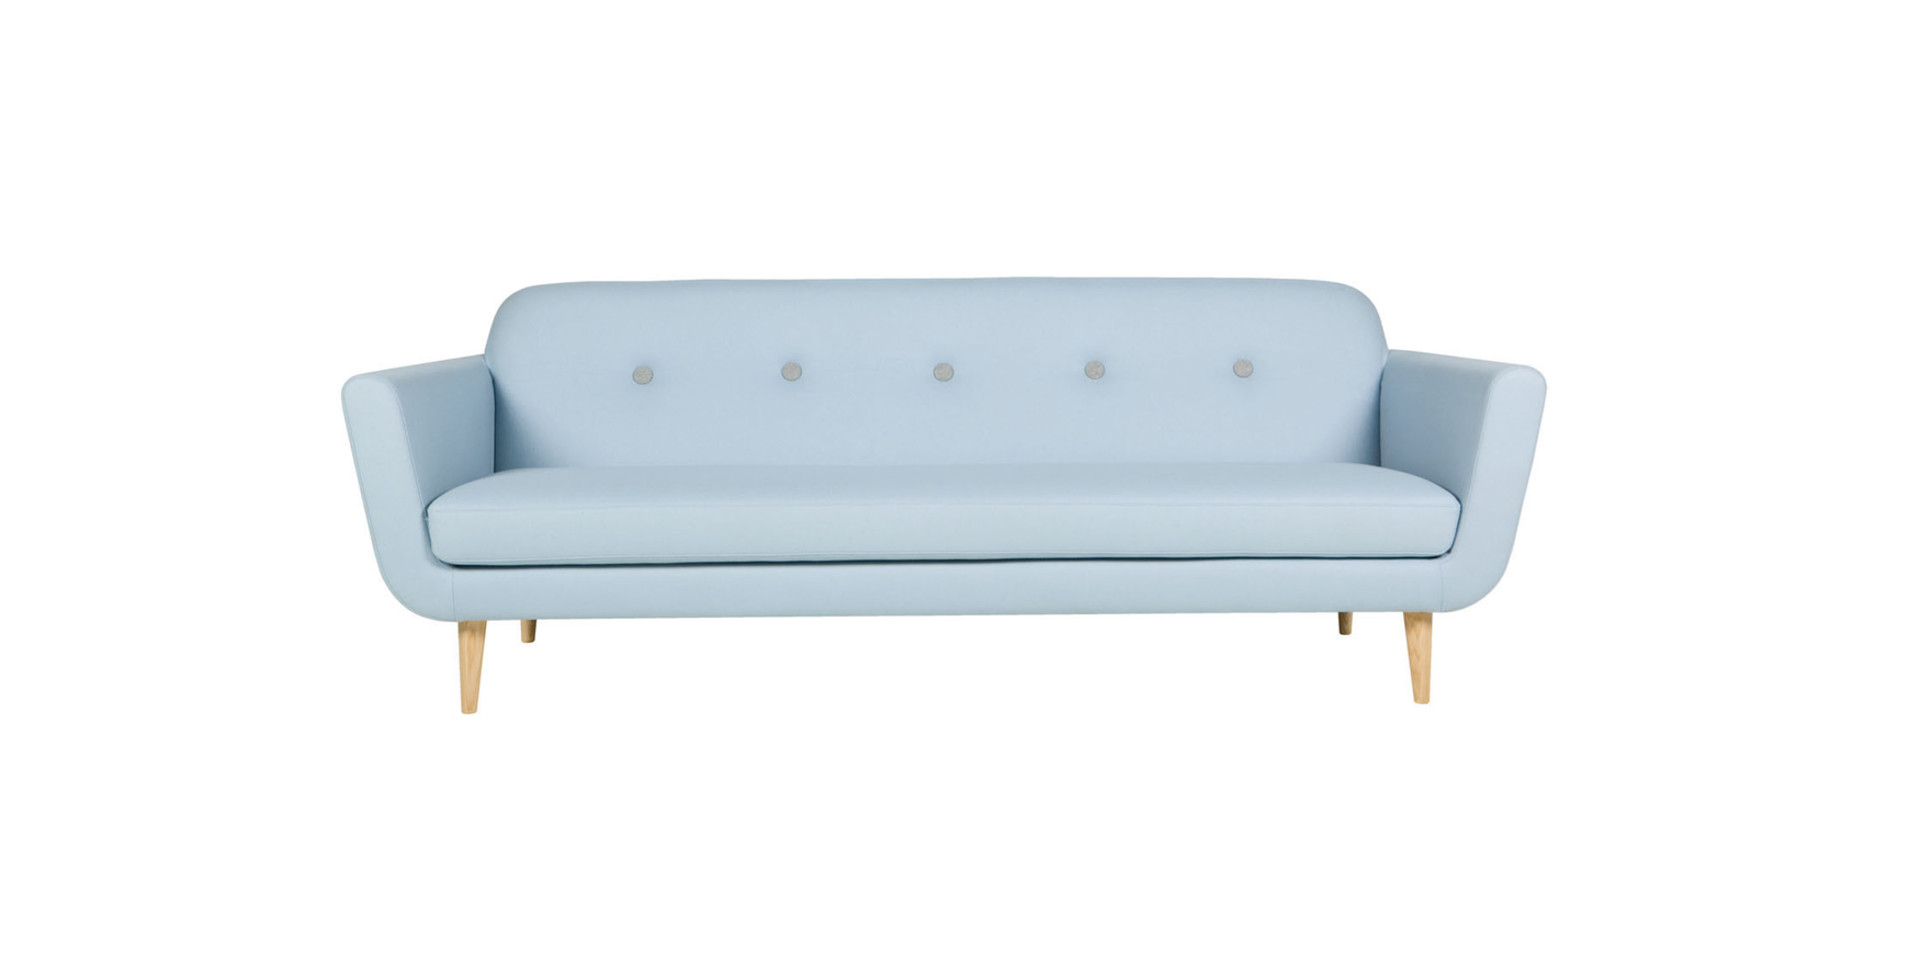 sits-otto-canape-3seater_panno2048_storm_blue_1